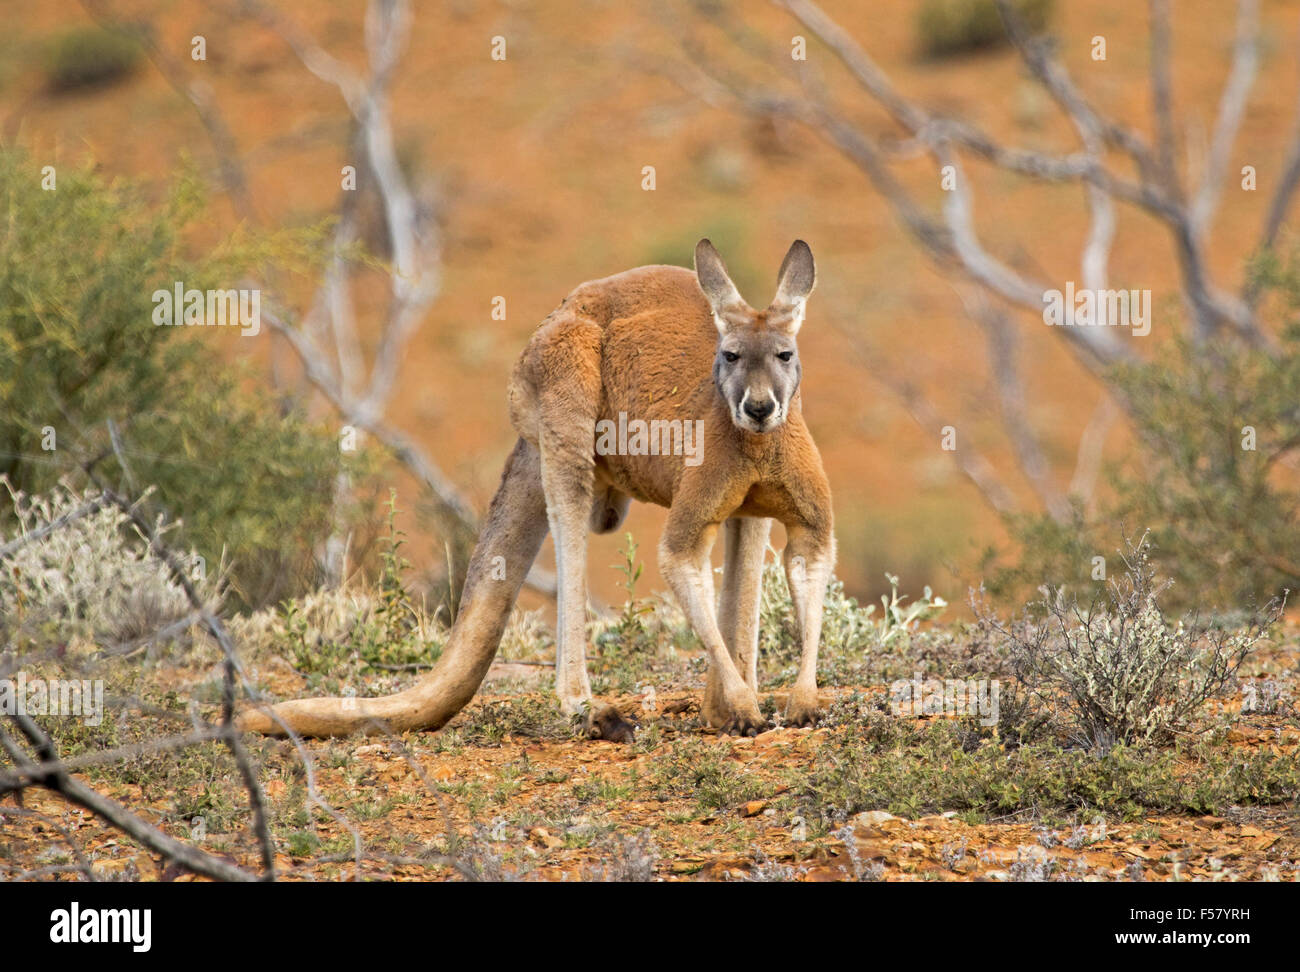 Male red kangaroo, Macropus rufus,  in crouching pose in outback landscape with red soil, low green vegetation & - Stock Image